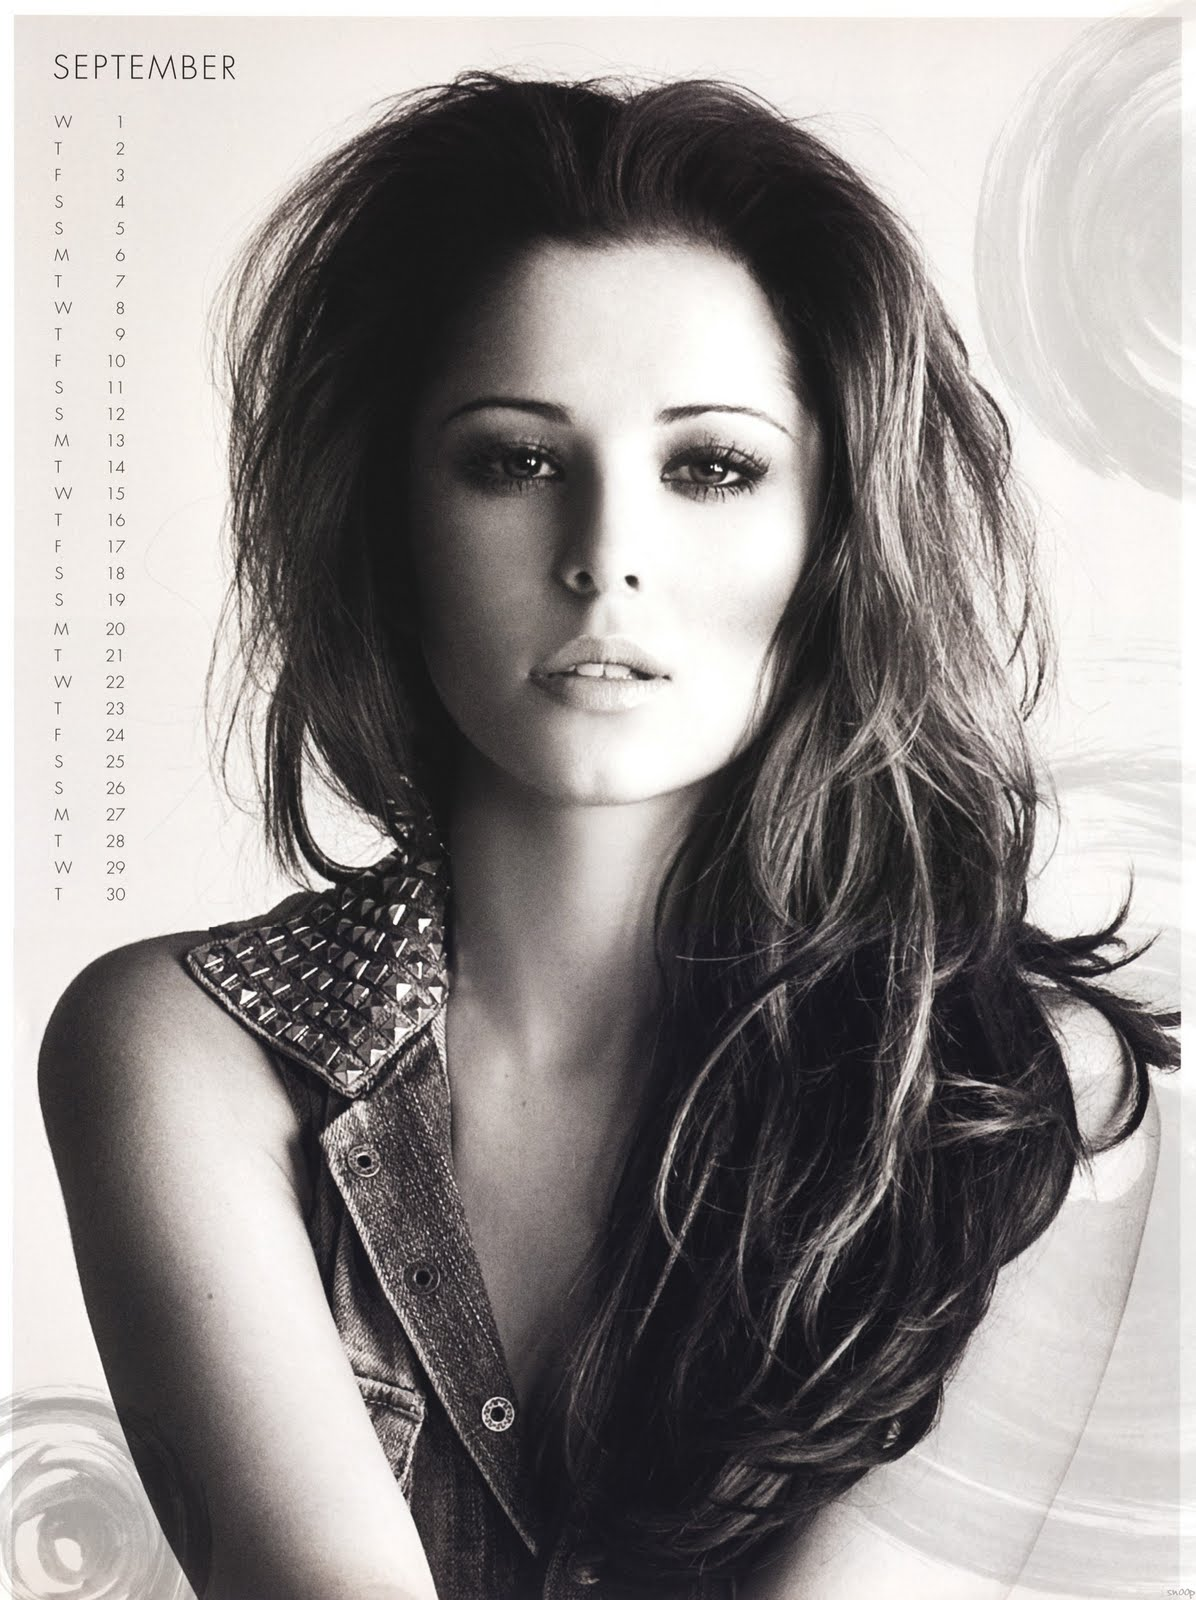 http://2.bp.blogspot.com/_mXAI3IWhFFc/TJSECLWTZ3I/AAAAAAAAAbc/7wbxoYurSlw/s1600/11645_Cheryl_Cole_-_Official_2010_Calendar_-_09_-_September_-_Normal_-snoop-_122_89lo.jpg